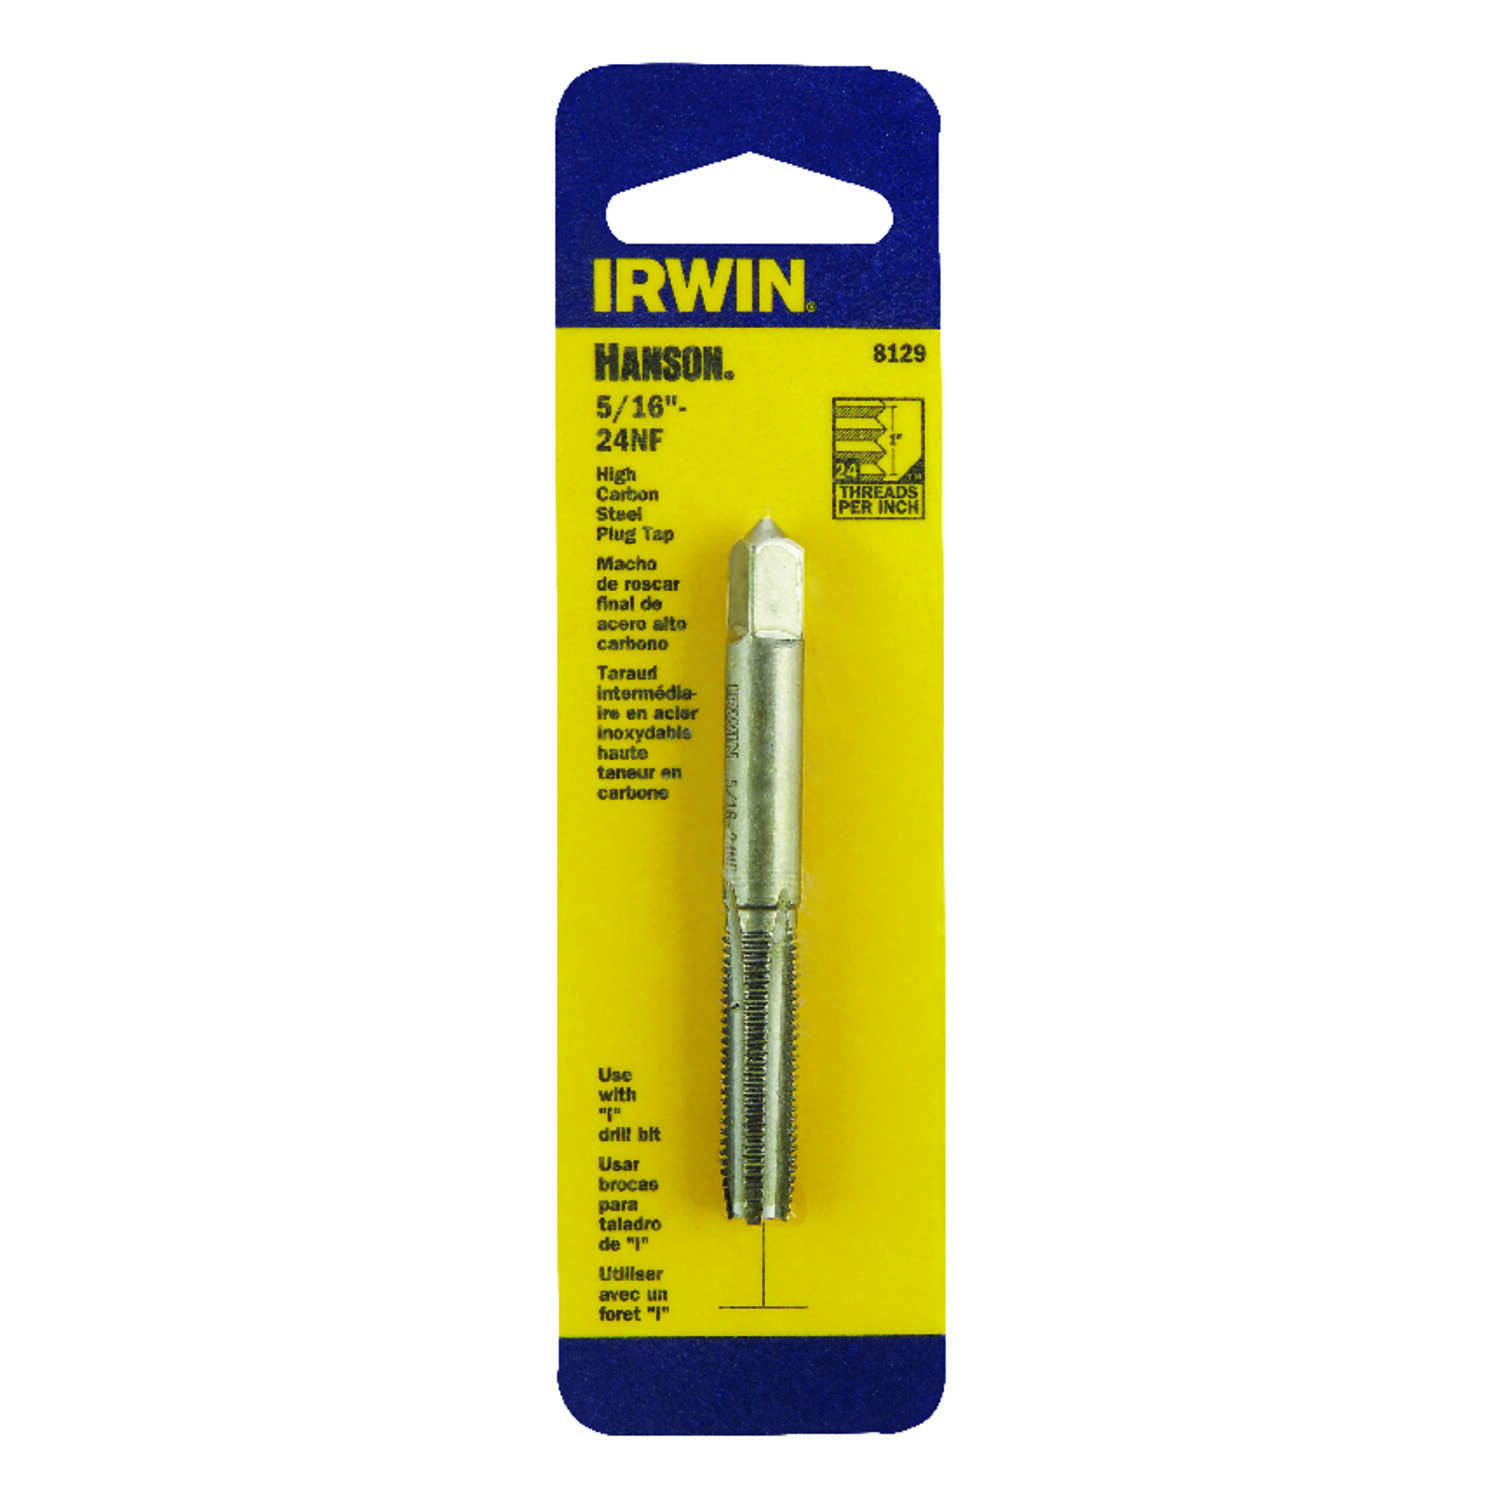 Irwin  Hanson  High Carbon Steel  SAE  Fraction Tap  5/16 in.-24NF  1 pc.